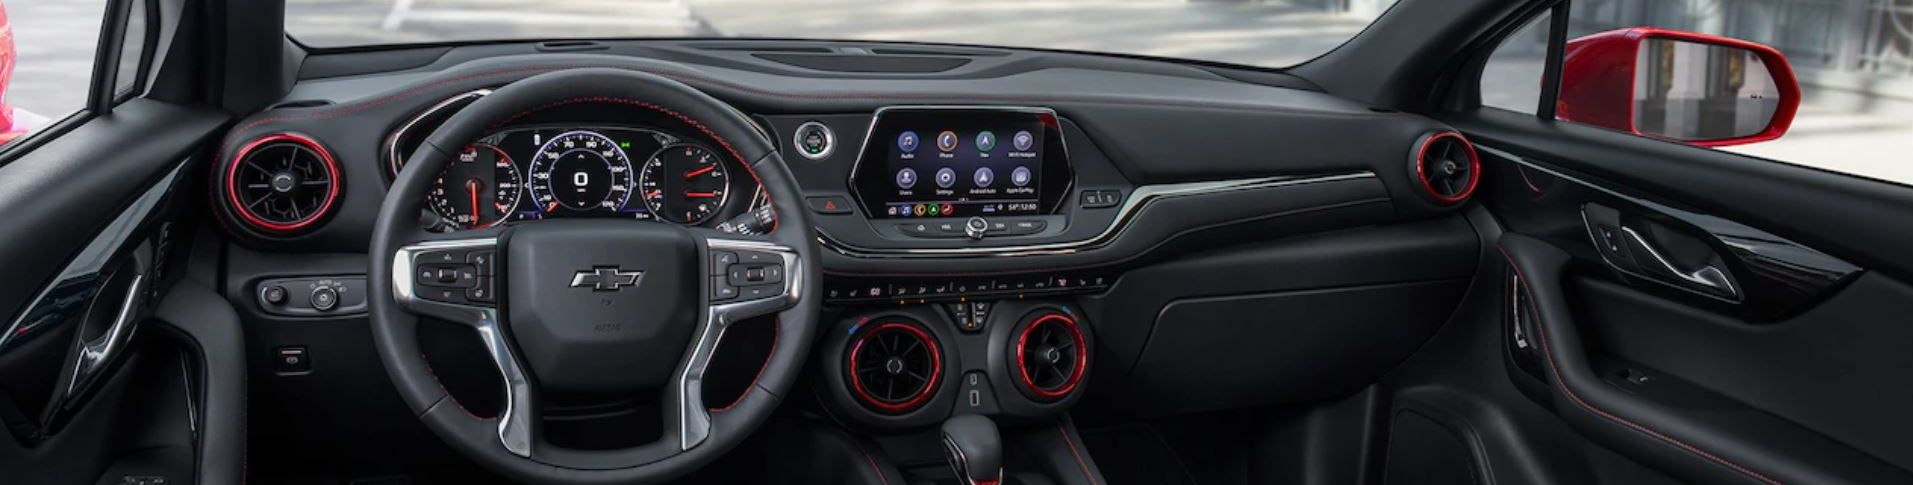 2019 Chevrolet Blazer Dashboard